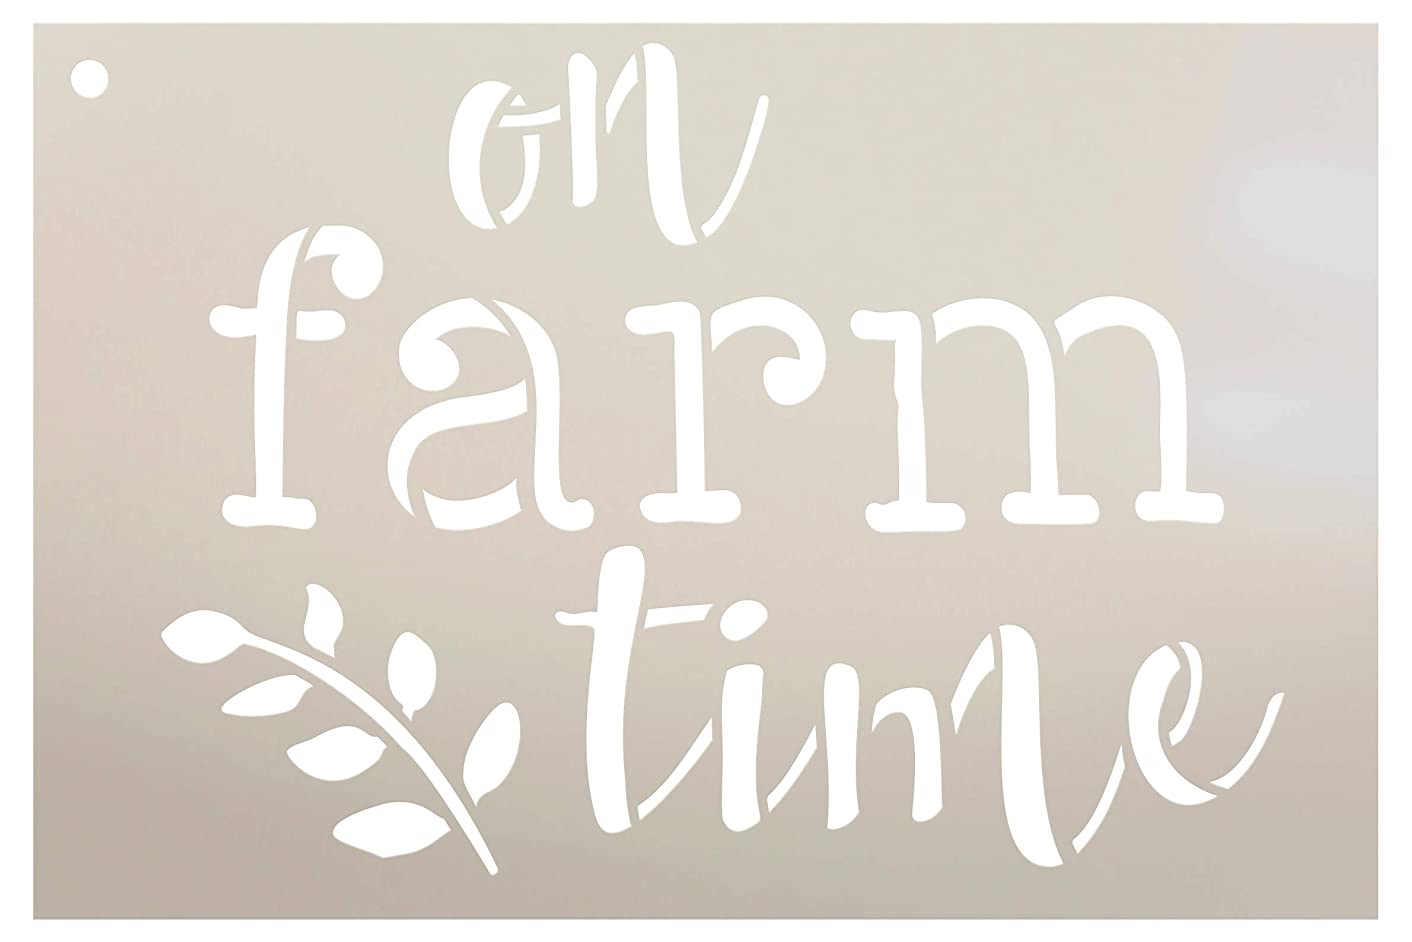 On Farm Time with Grain Stalk Stencil by StudioR12 | Reusable Mylar Template | Use to Paint Wood Signs - Pallets - Walls - Apron - DIY Country Decor - Select Size (9